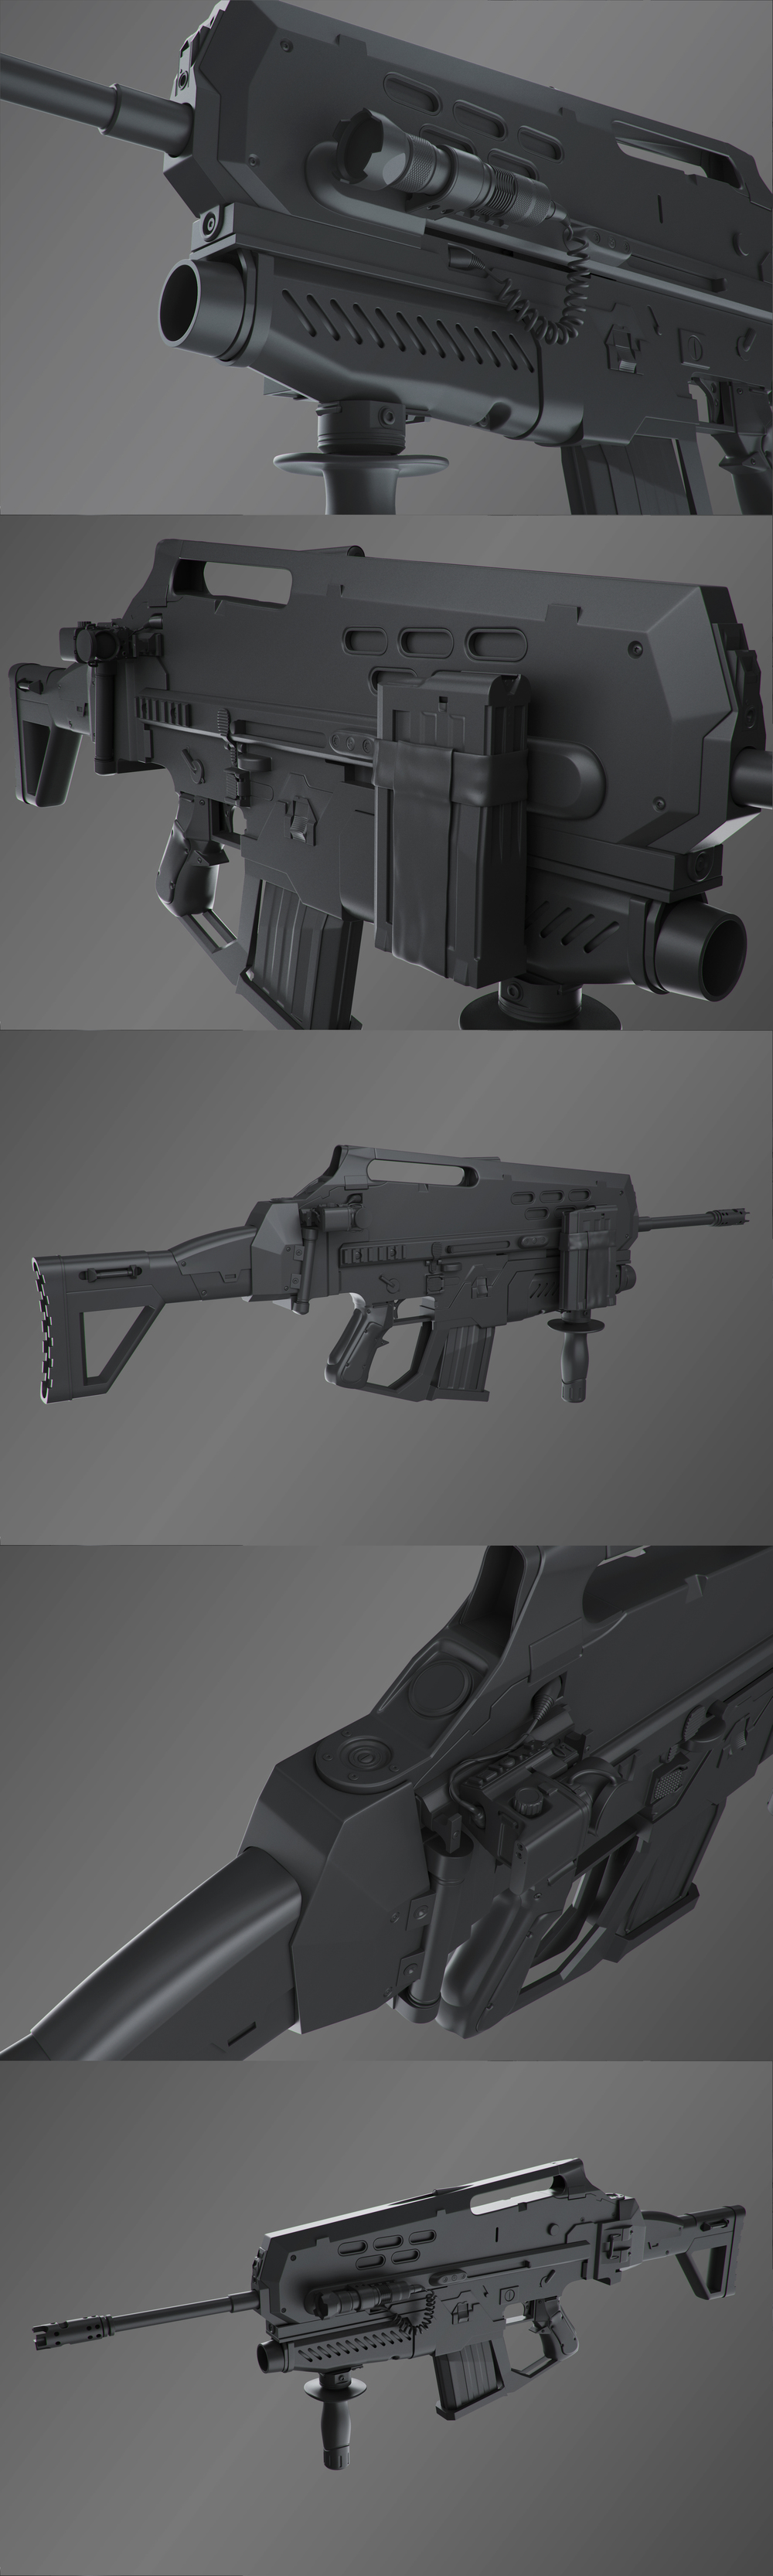 GWOZD Assault Rifle